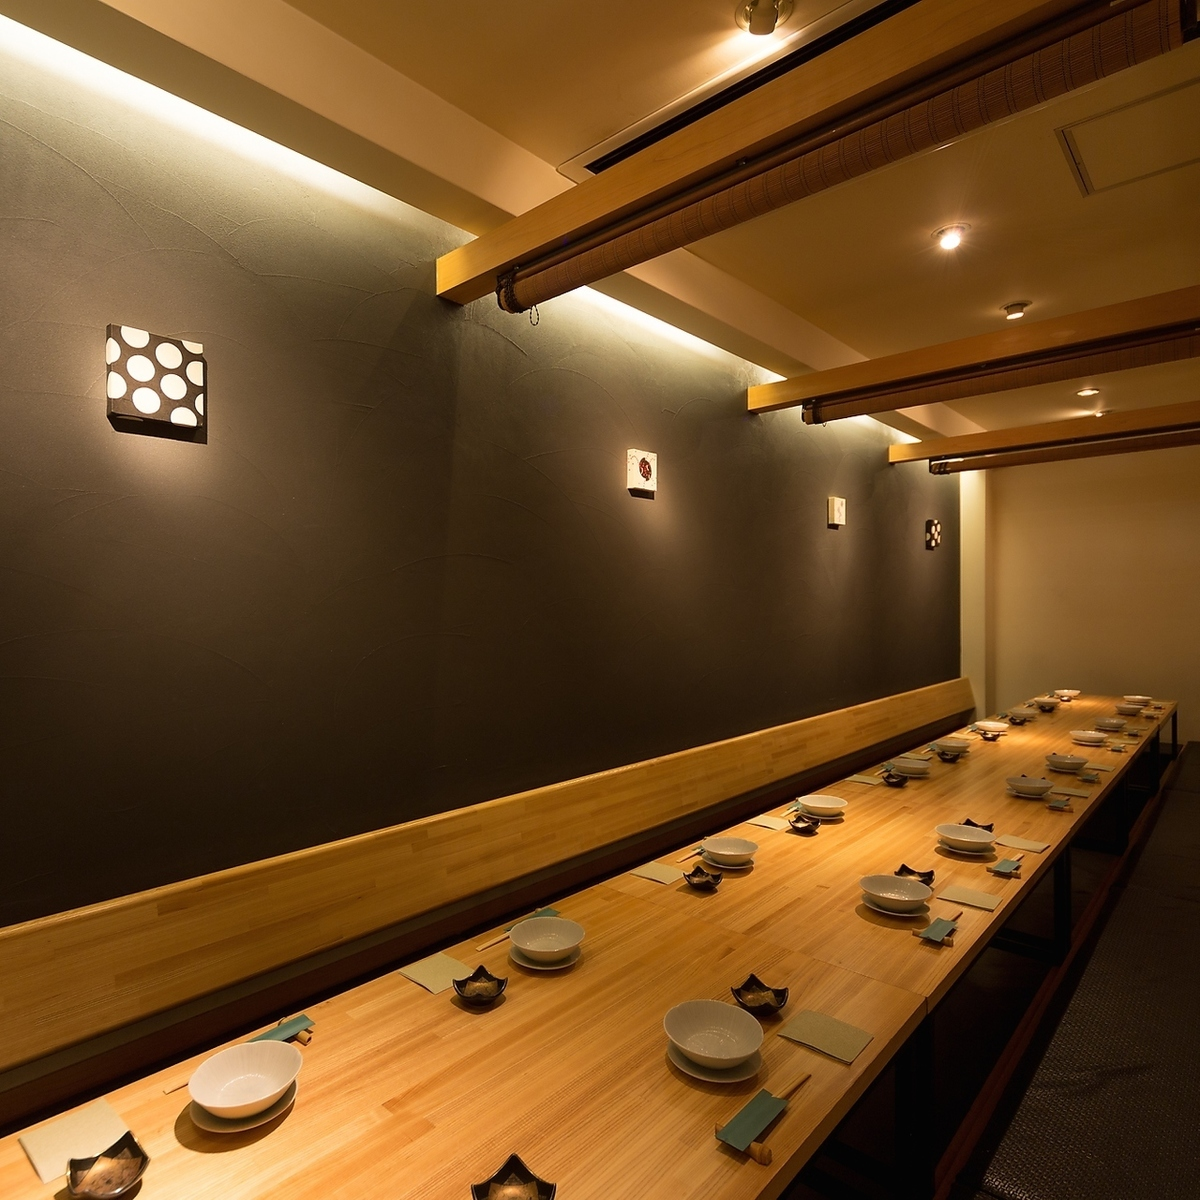 Please have a company banquet at Asami.Private room for up to 20 people